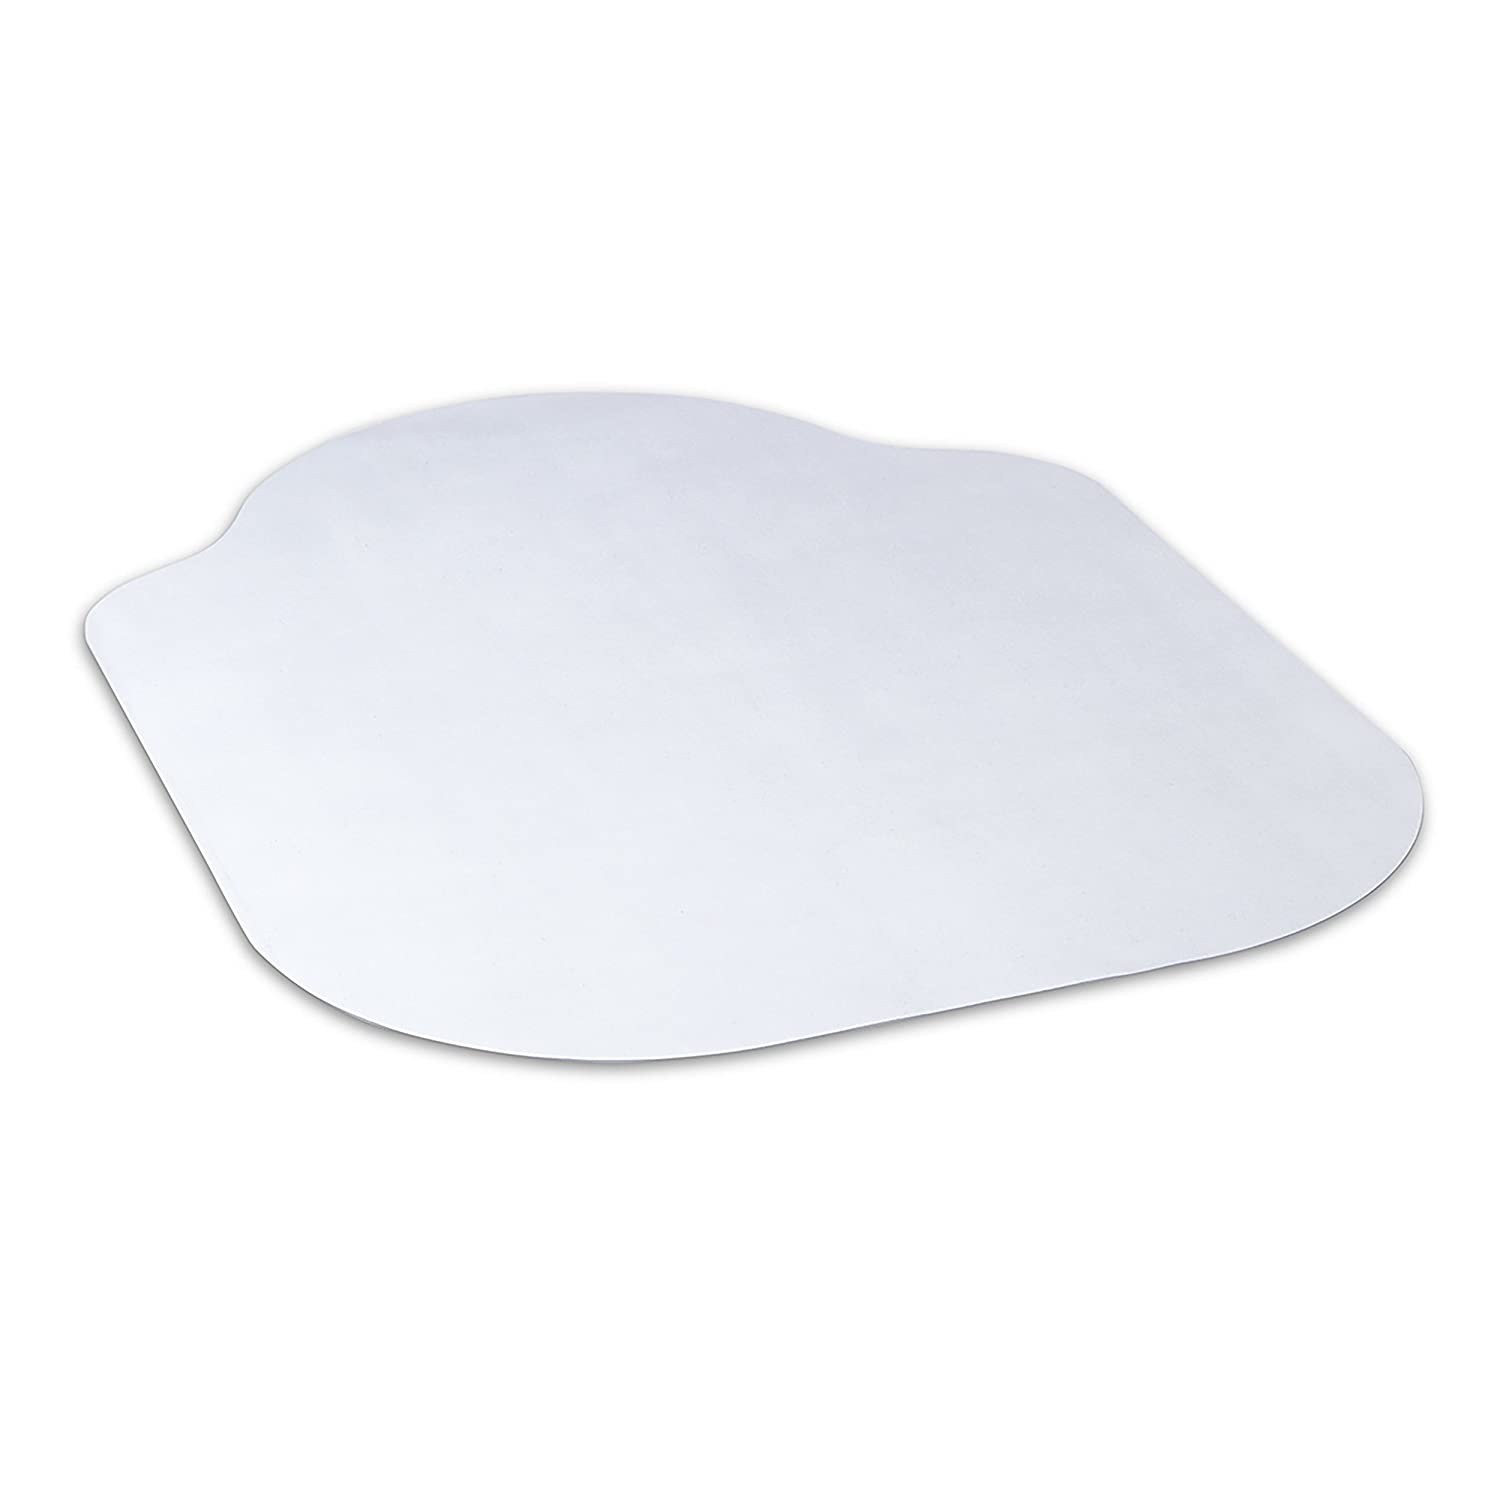 Evolve Modern Shape 39 x 52 Clear Office Chair Mat with Lip for Hard Floor from Dimex, 15C50630